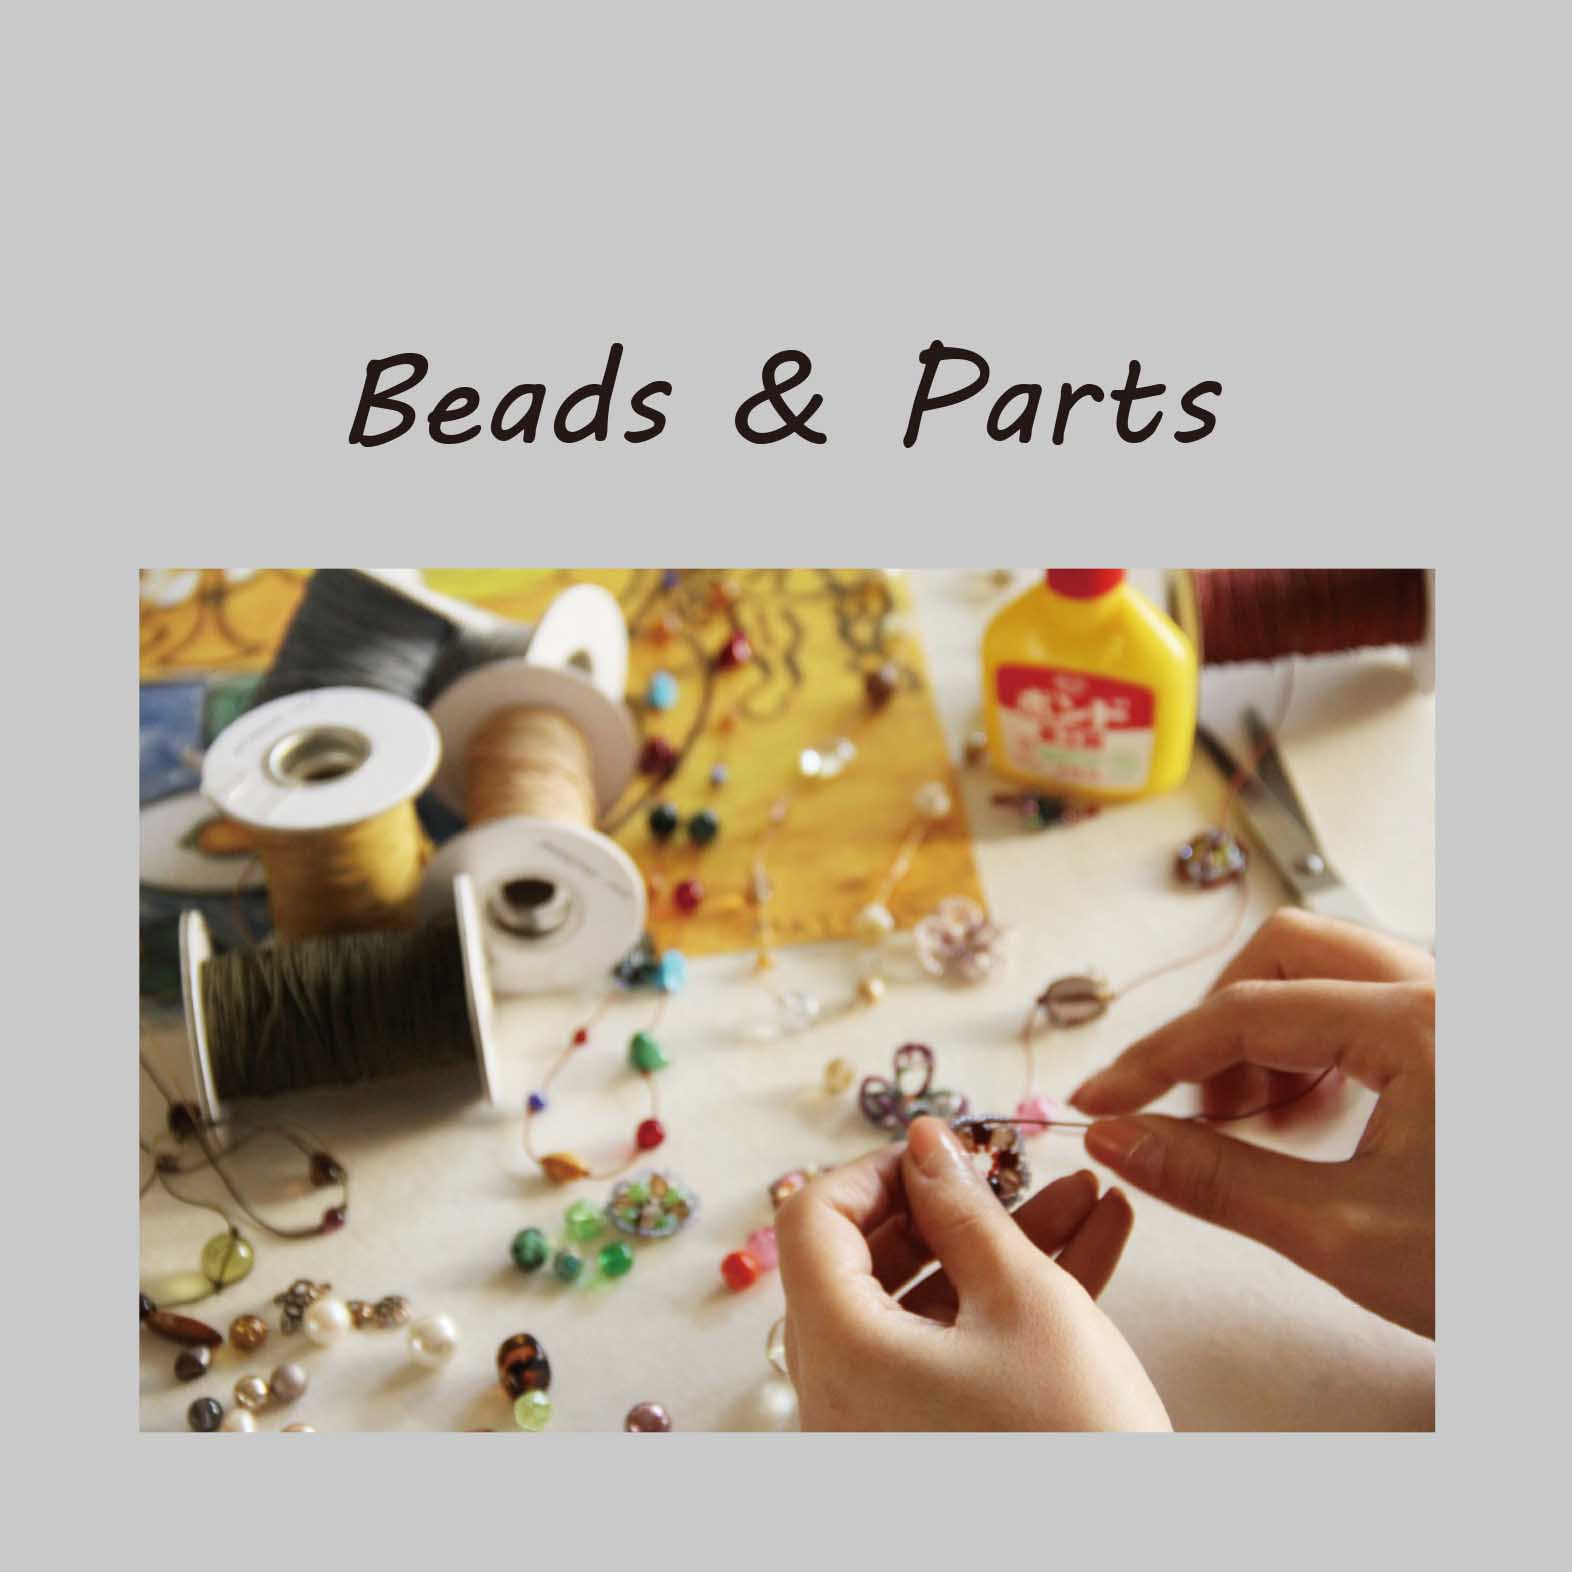 Beads &Parts